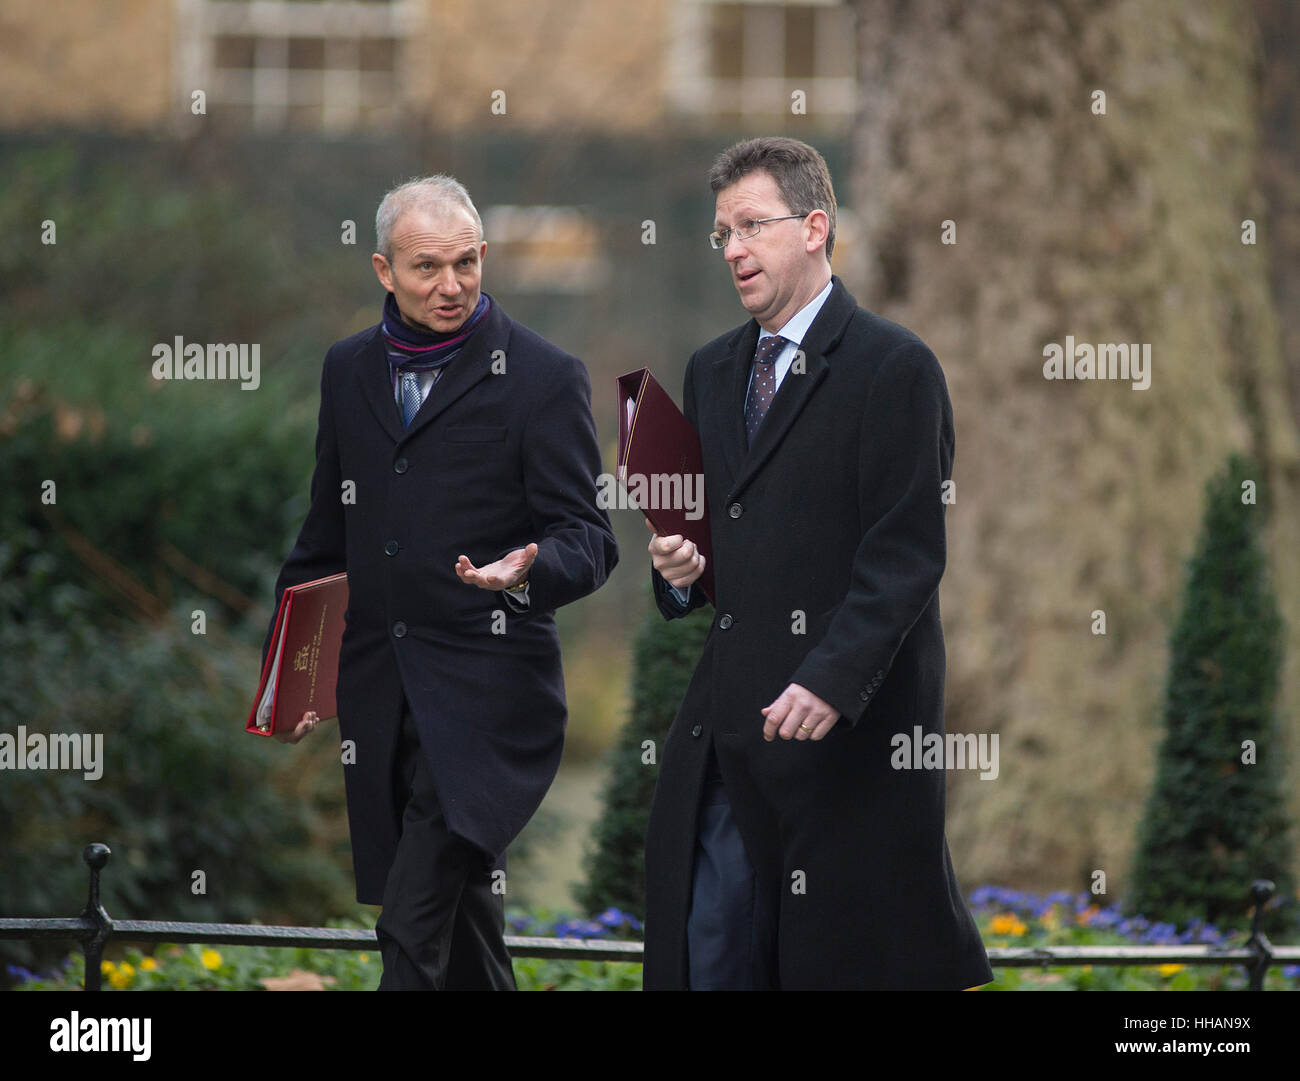 David Lidlington, Lord President of the Council, Leader of the House of Commons and Jeremy Wright QC, Attorney General - Stock Image